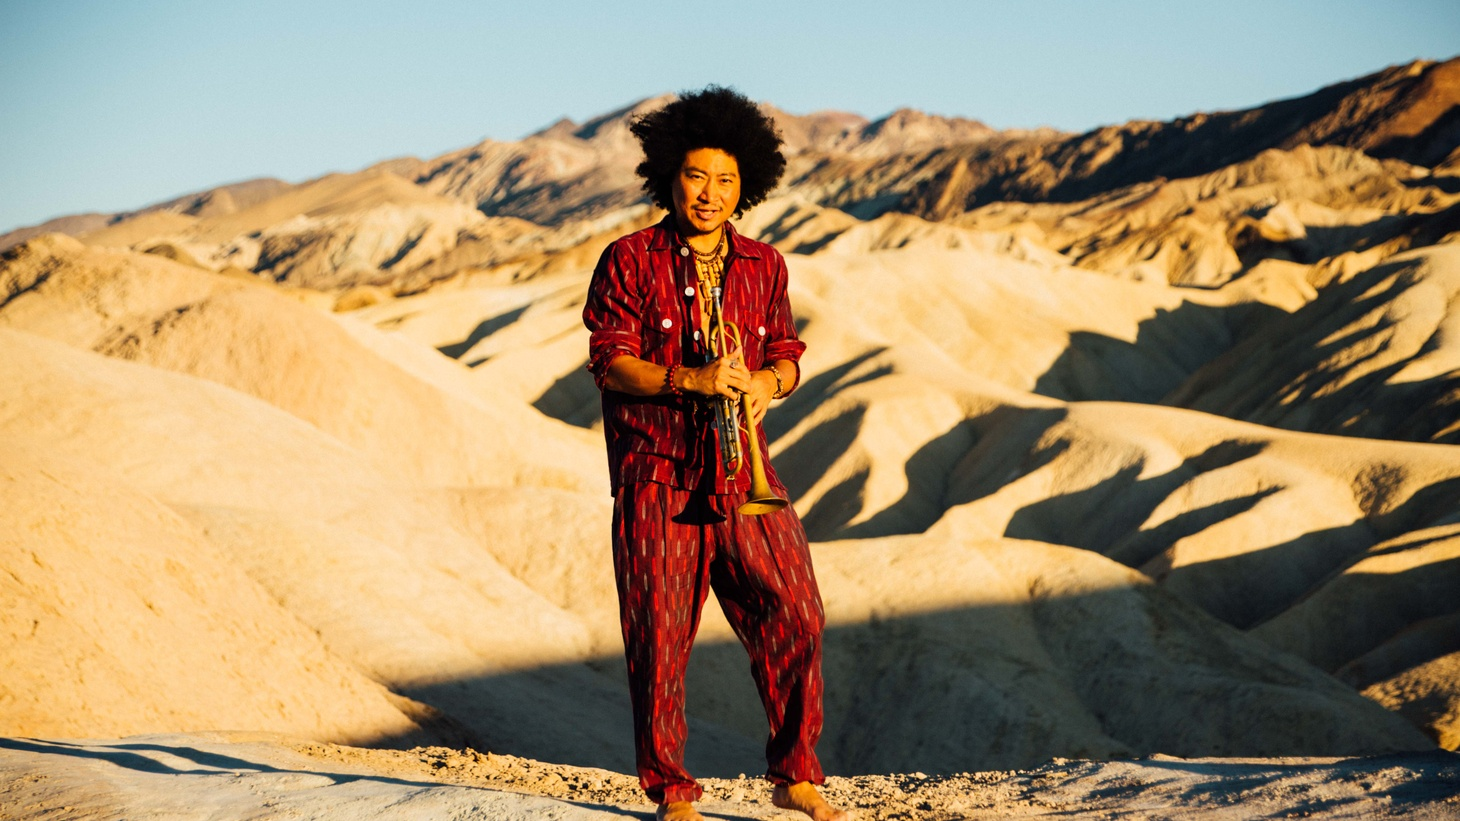 """Jazz/funk trumpeter Takuya Kuroda is highly respected for his extraordinary chops who you might know for his collaborations with José James or Antibalas. Kuroda lets the grooves breathe on """"Change"""" featuring Corey King."""